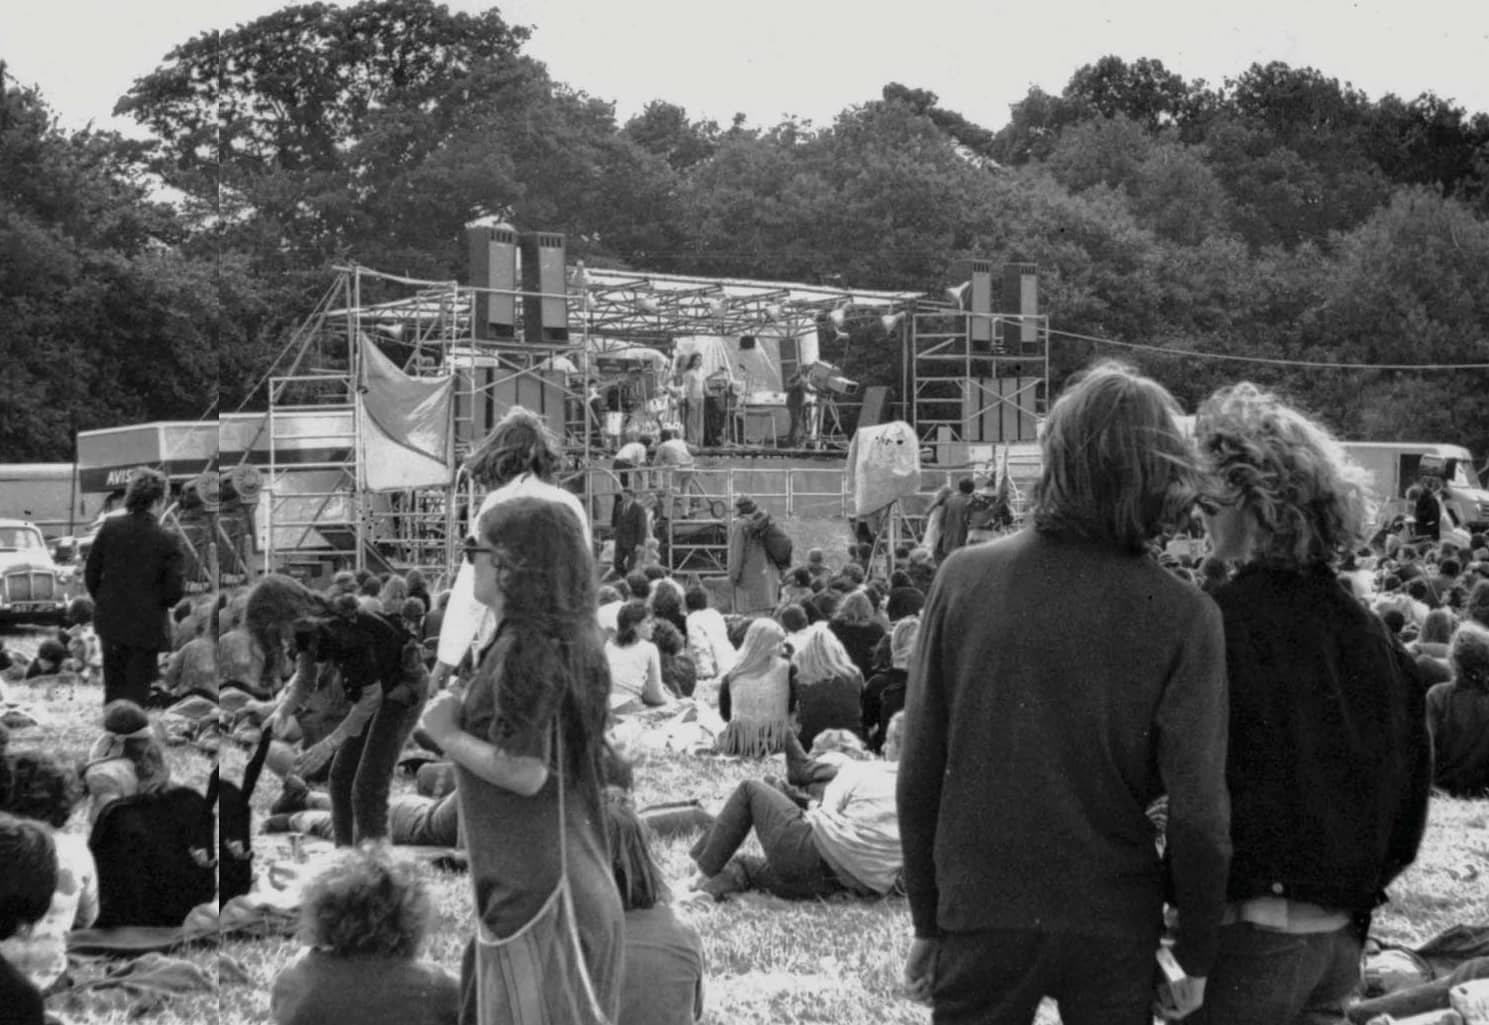 The day the hippies came to Worthing